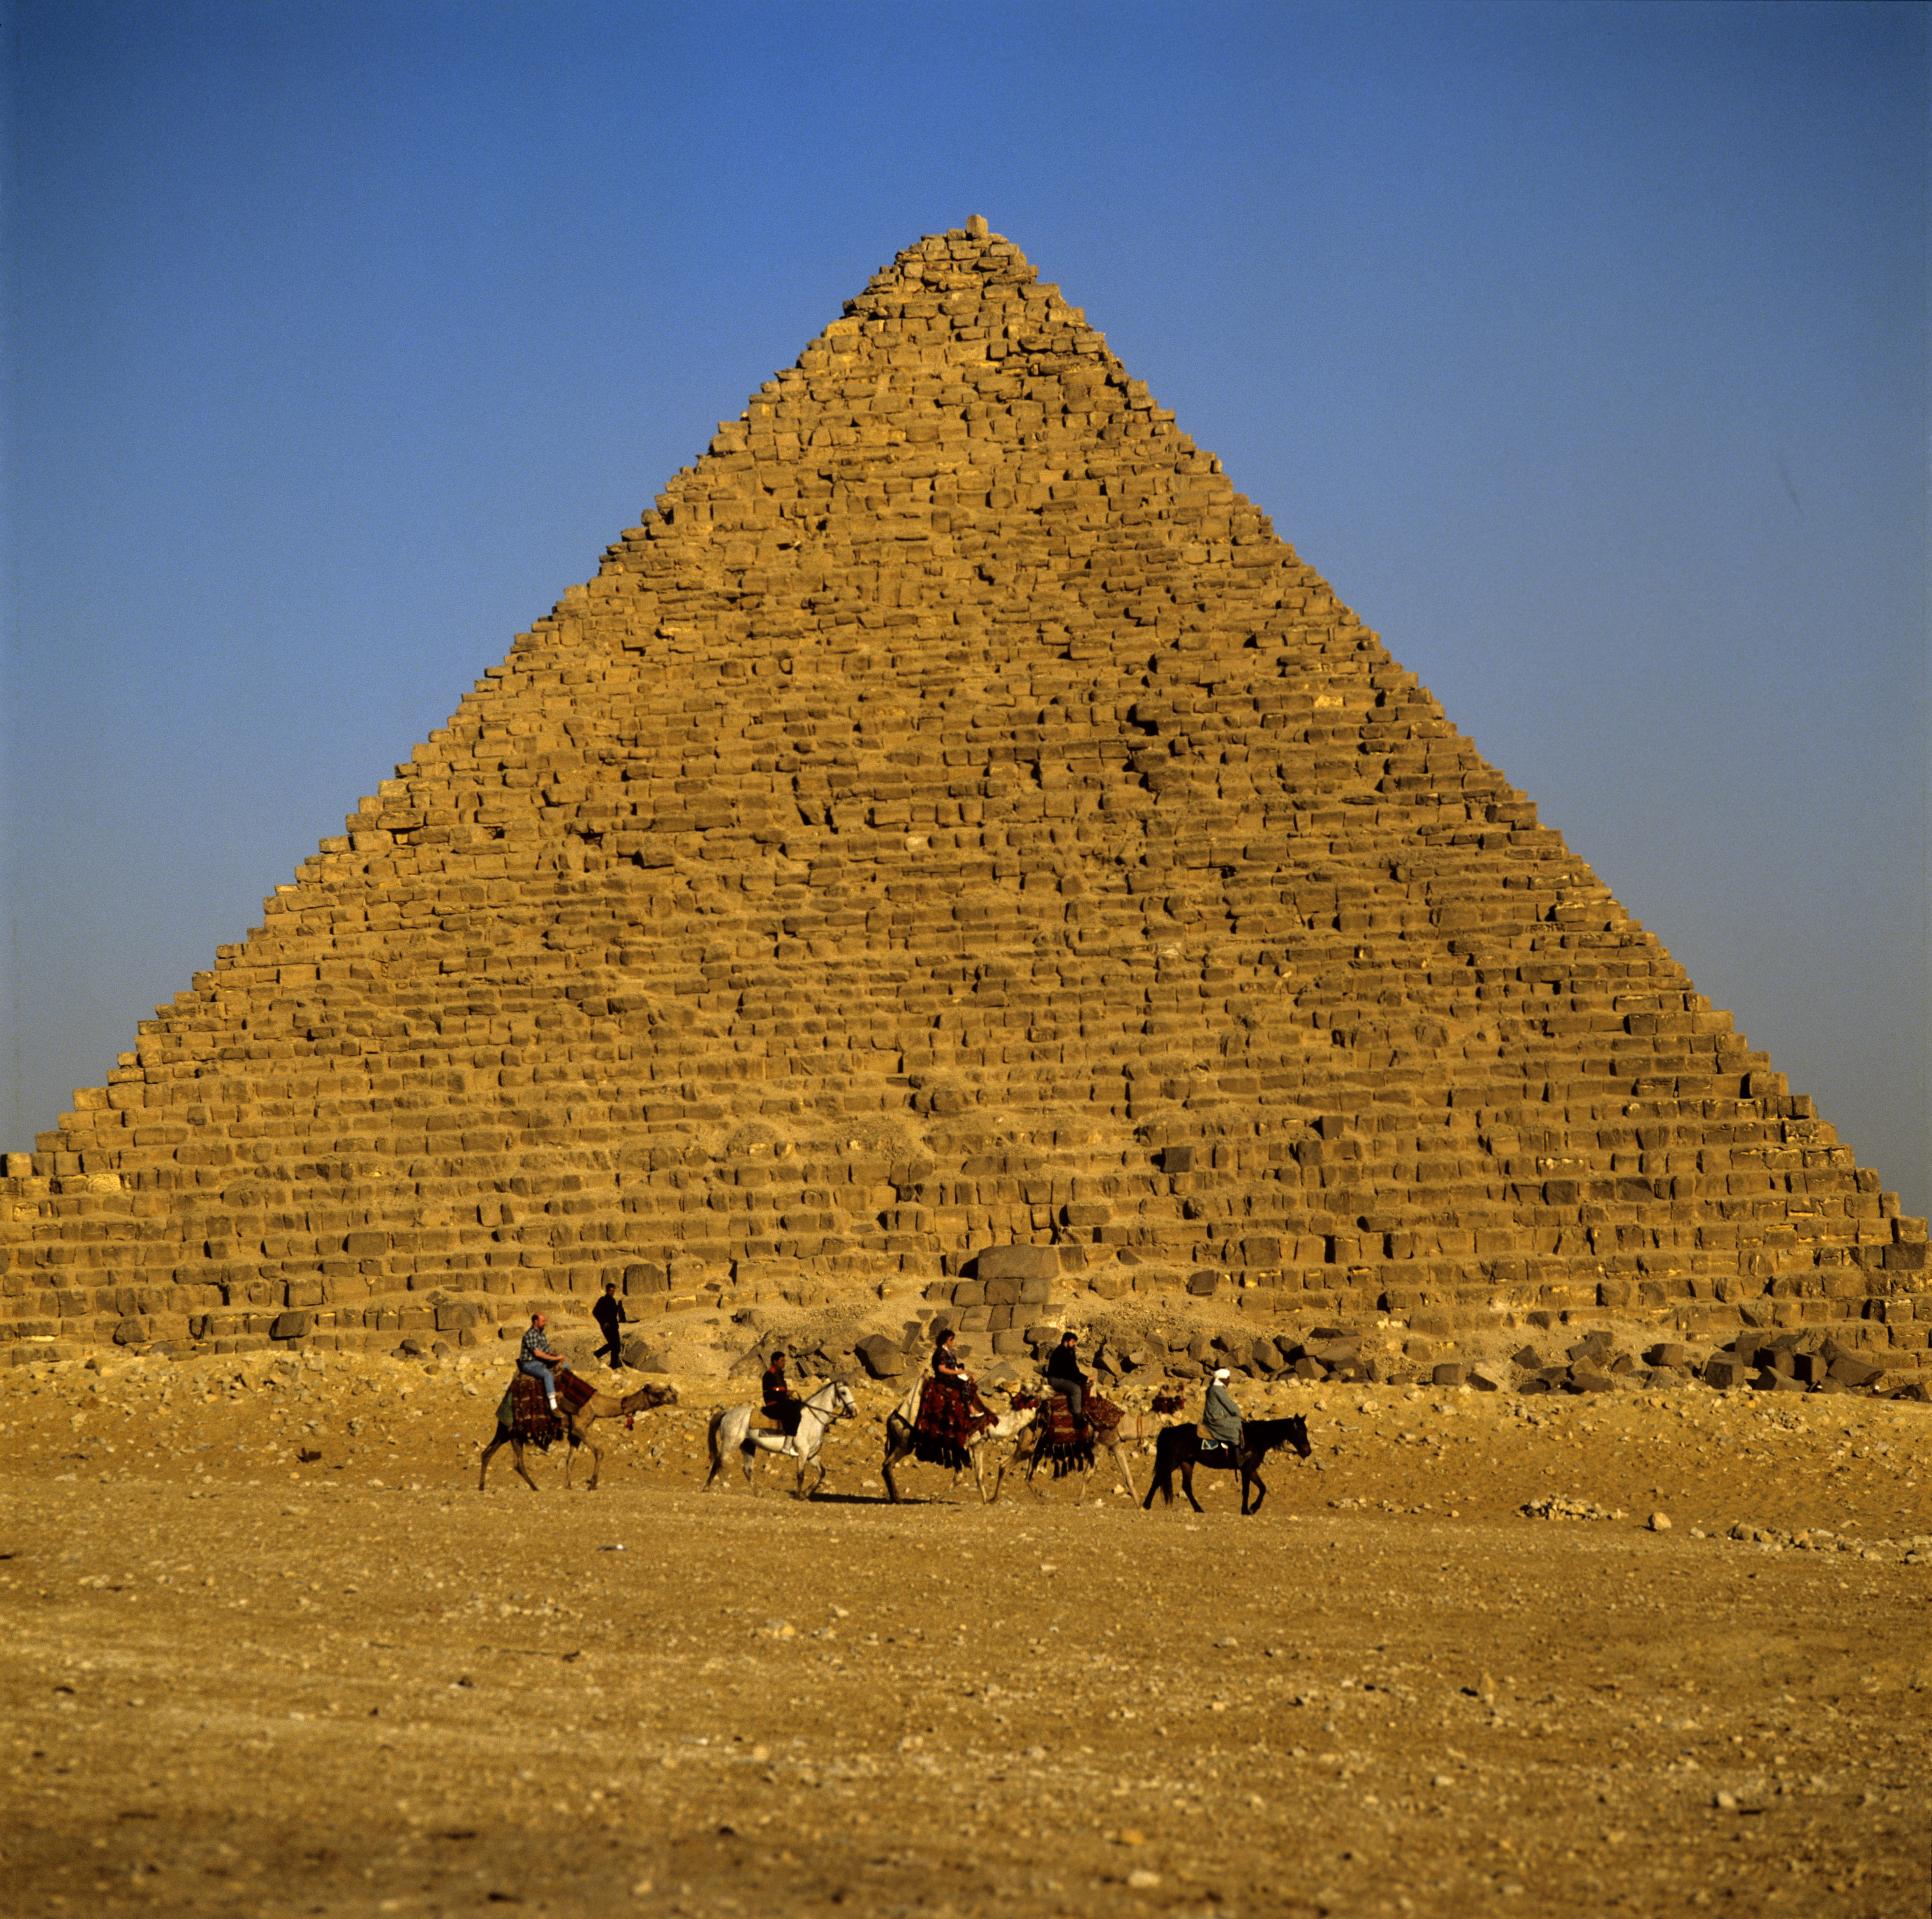 Bedouin with tourists in front of the Pyramid of Menkaure